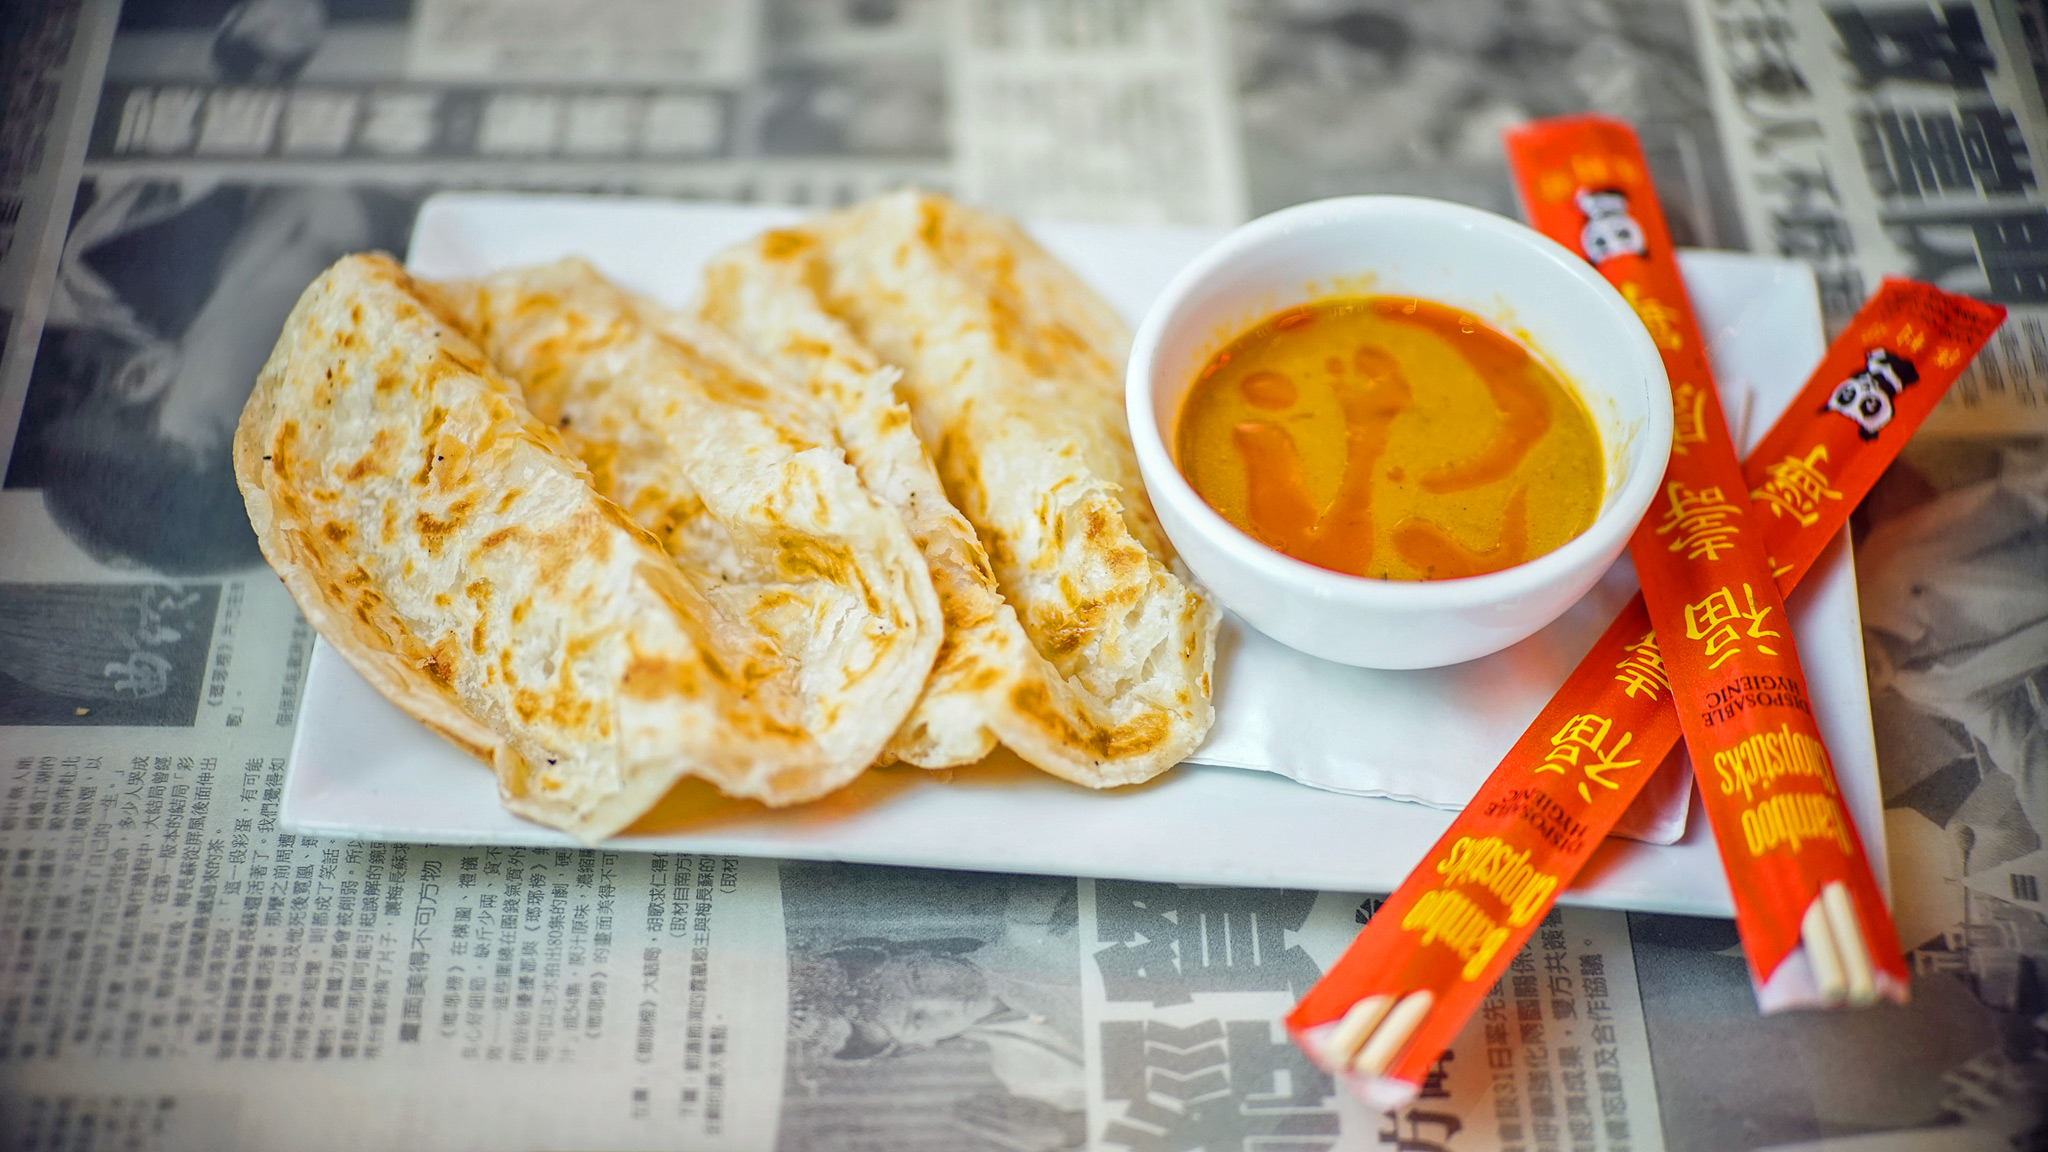 Roti Canai, which is a Malaysian flat bread served with a side of signature curry